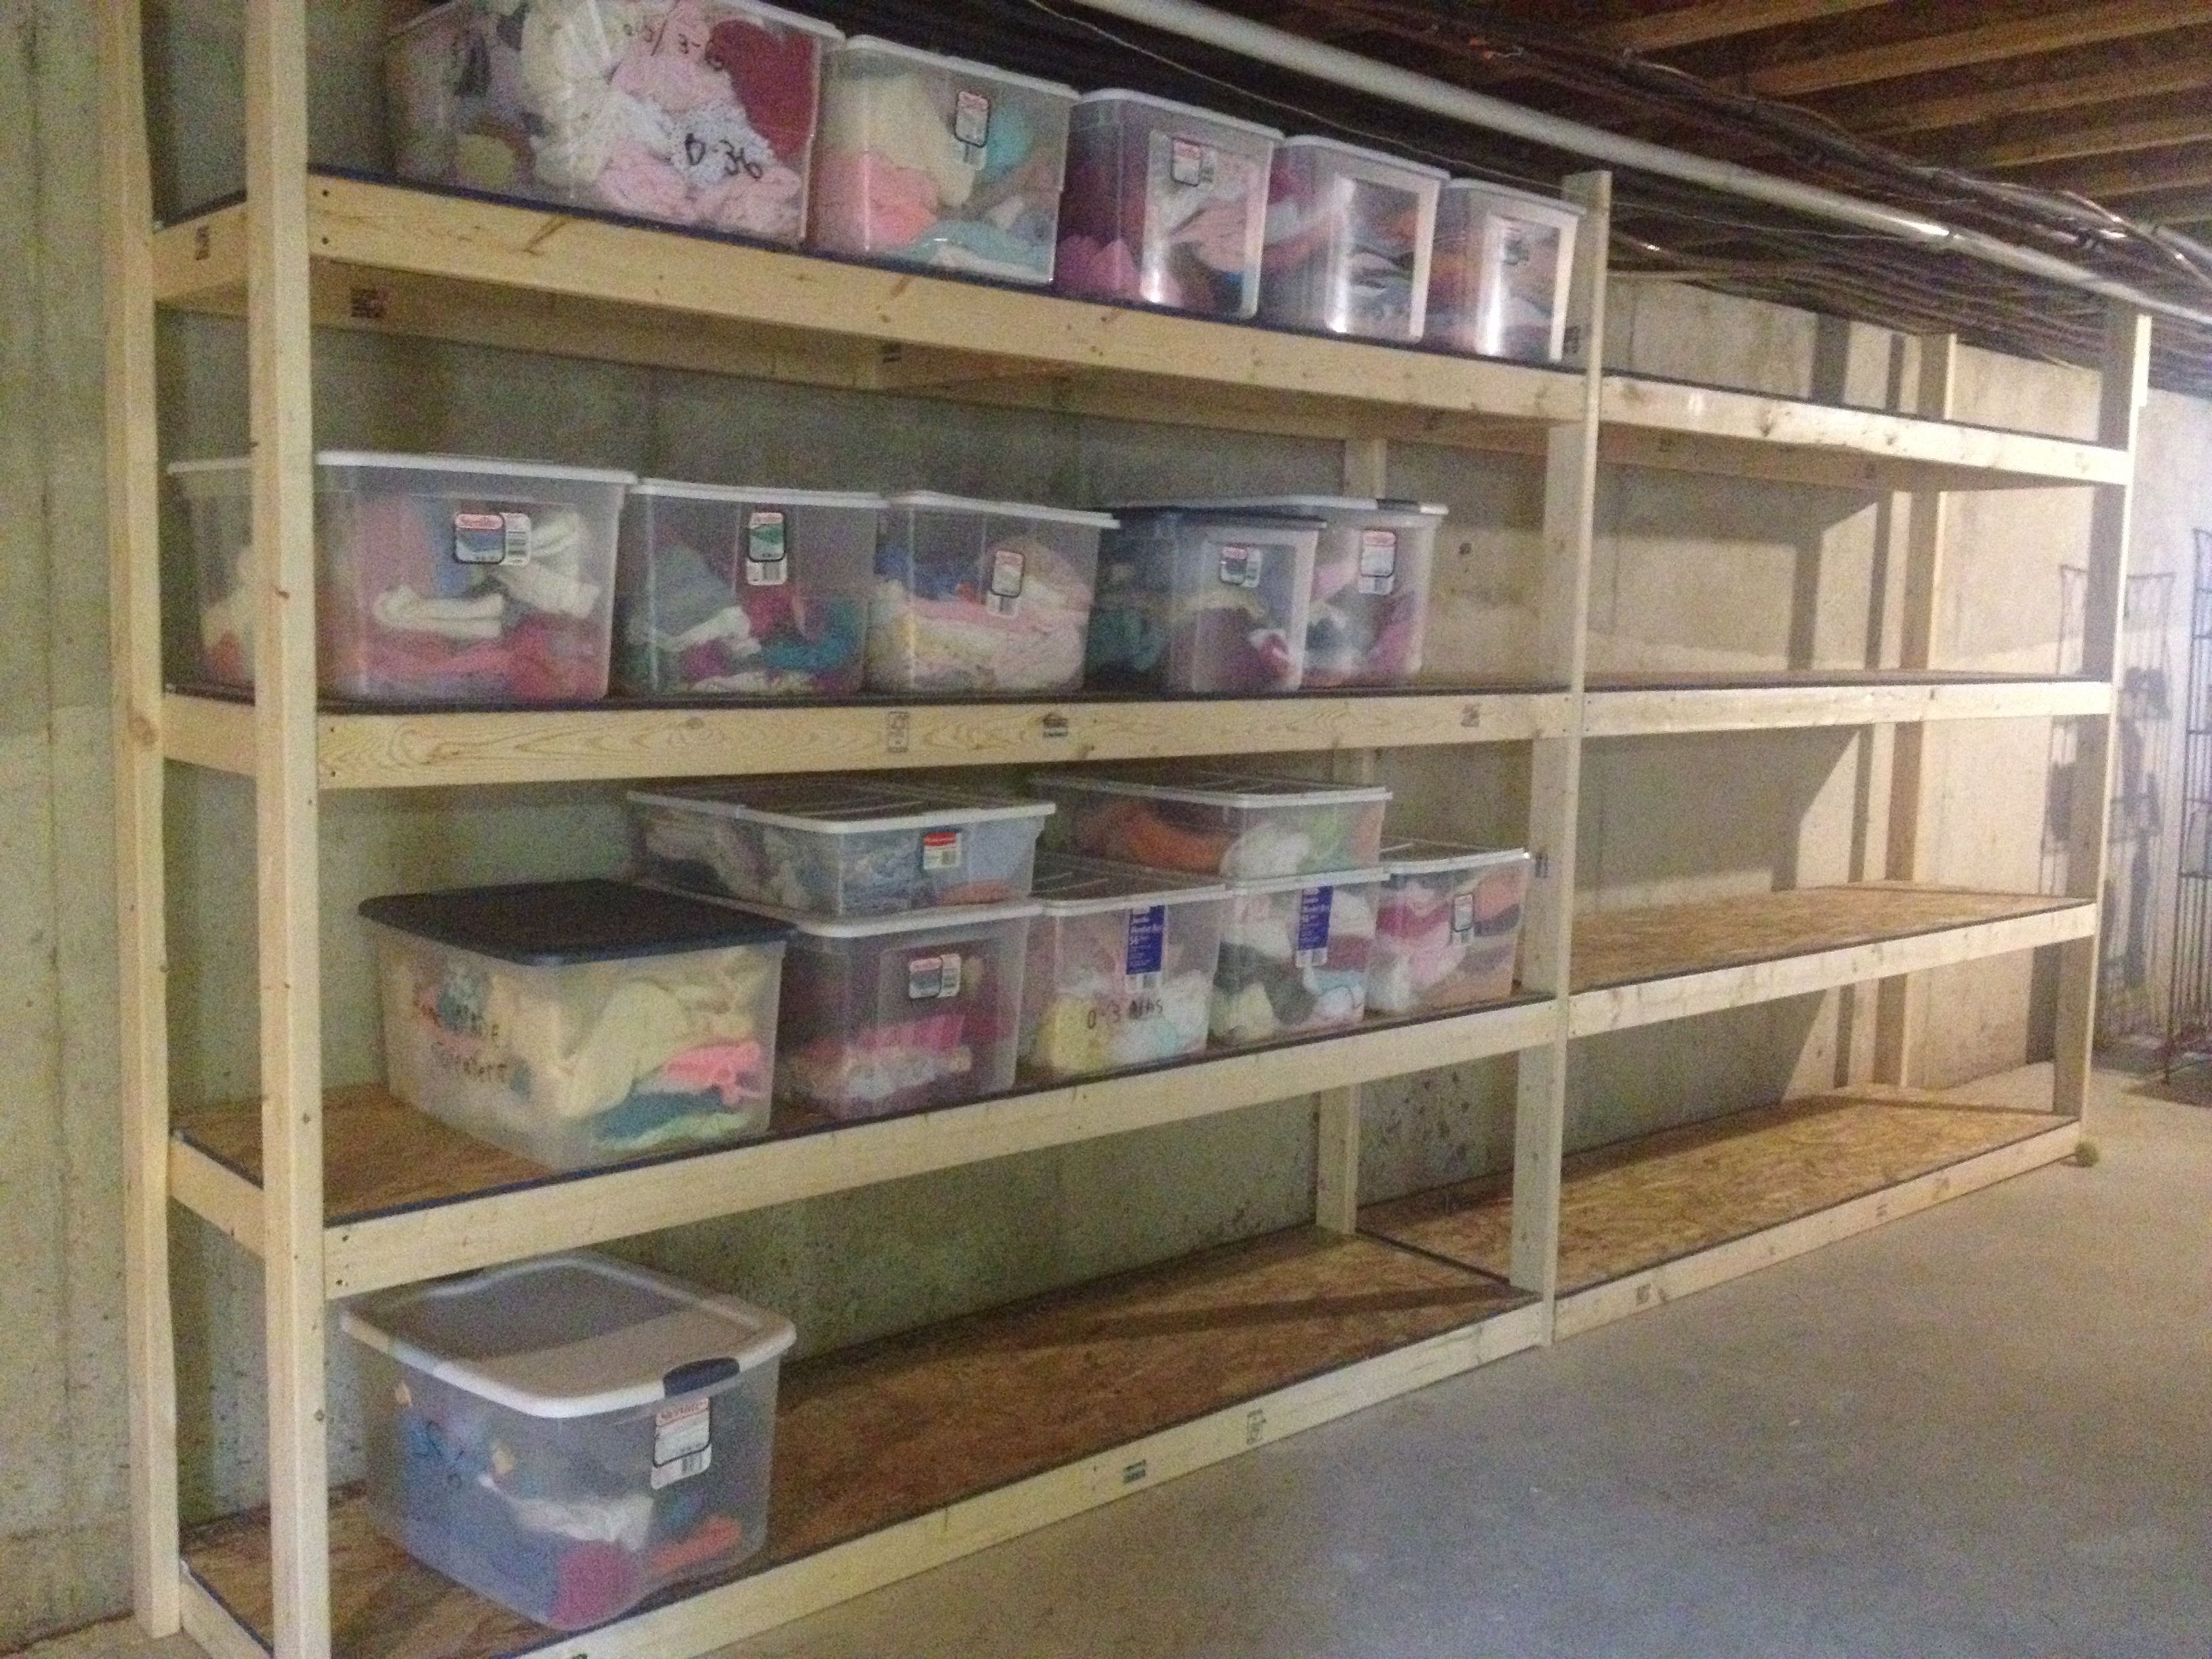 Build Garage Wall Shelves Basement Storage Shelves 225 In Material And A Saturday